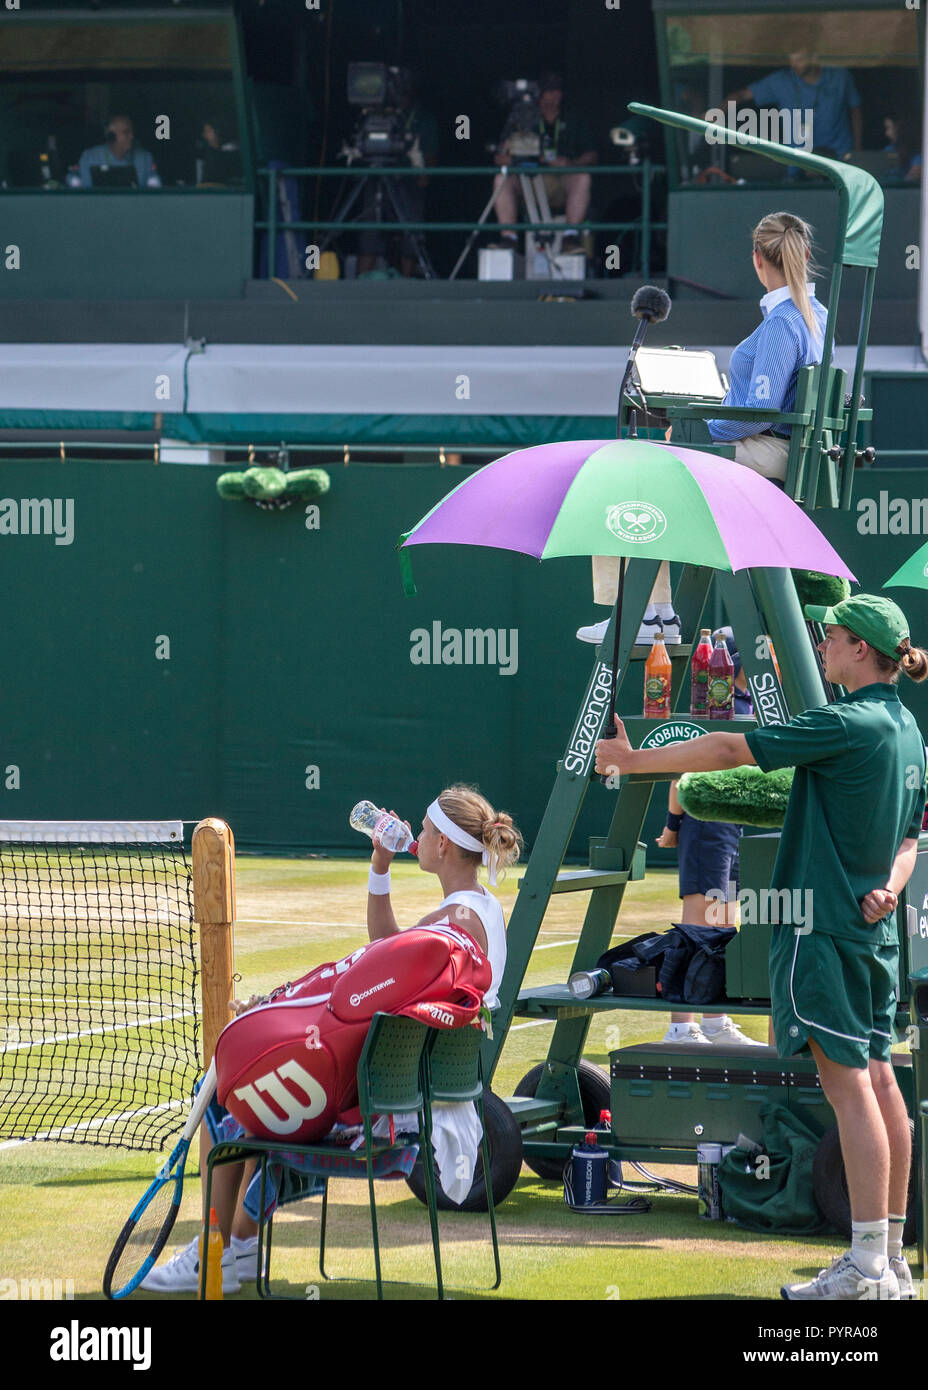 wimbledon tennis match umpire sitting in umpires chair above the players - Stock Image